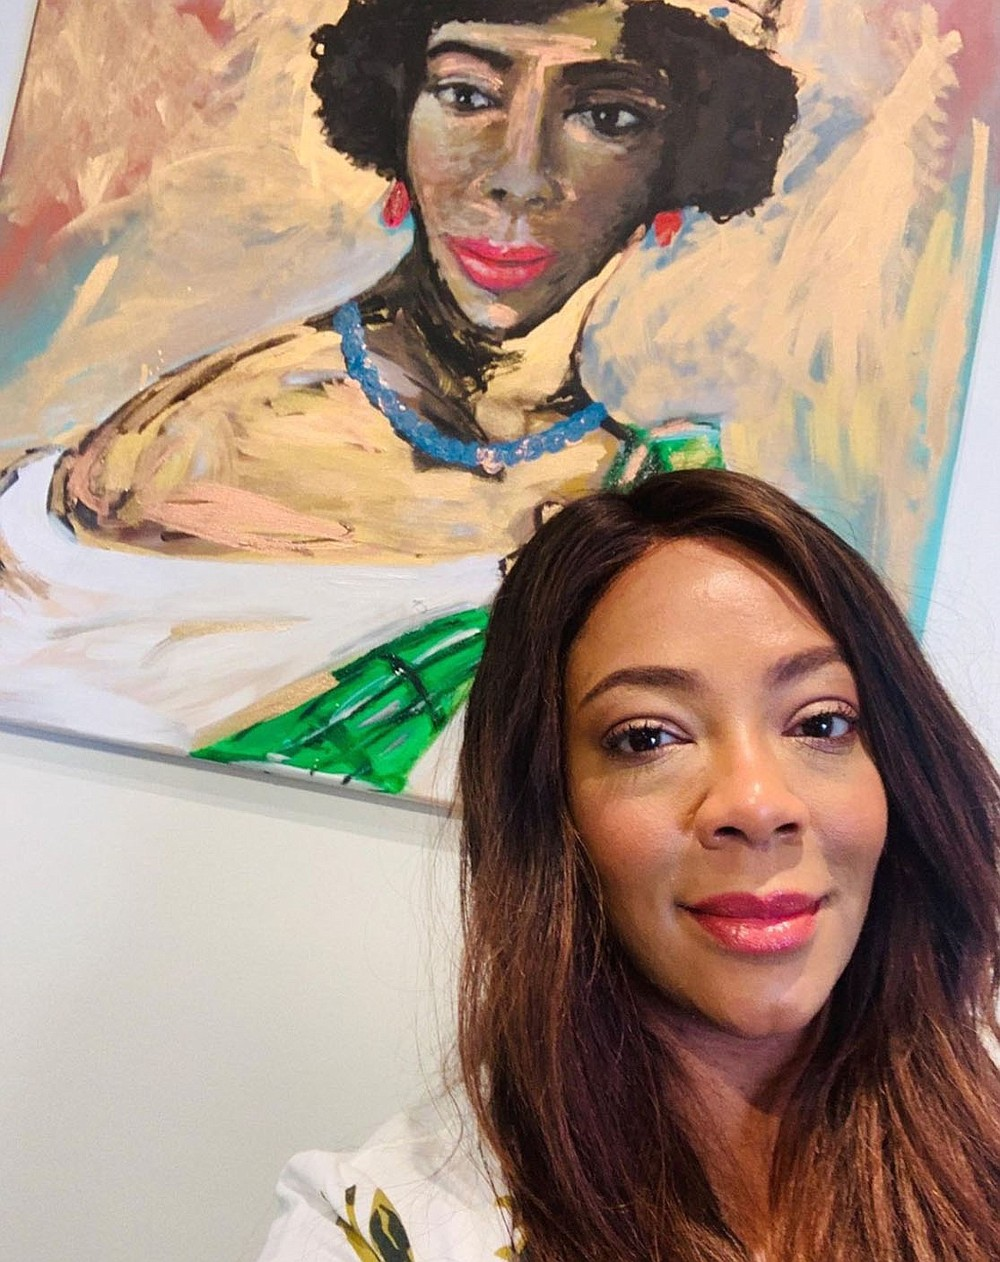 """Artist and curator Kinya Christian poses with one of her artworks on display in ìReflections of the Black Experience,"""" at the Rogers Historical Museum through Feb. 27. (Special to the Democrat-Gazette/Kinya Christian)"""